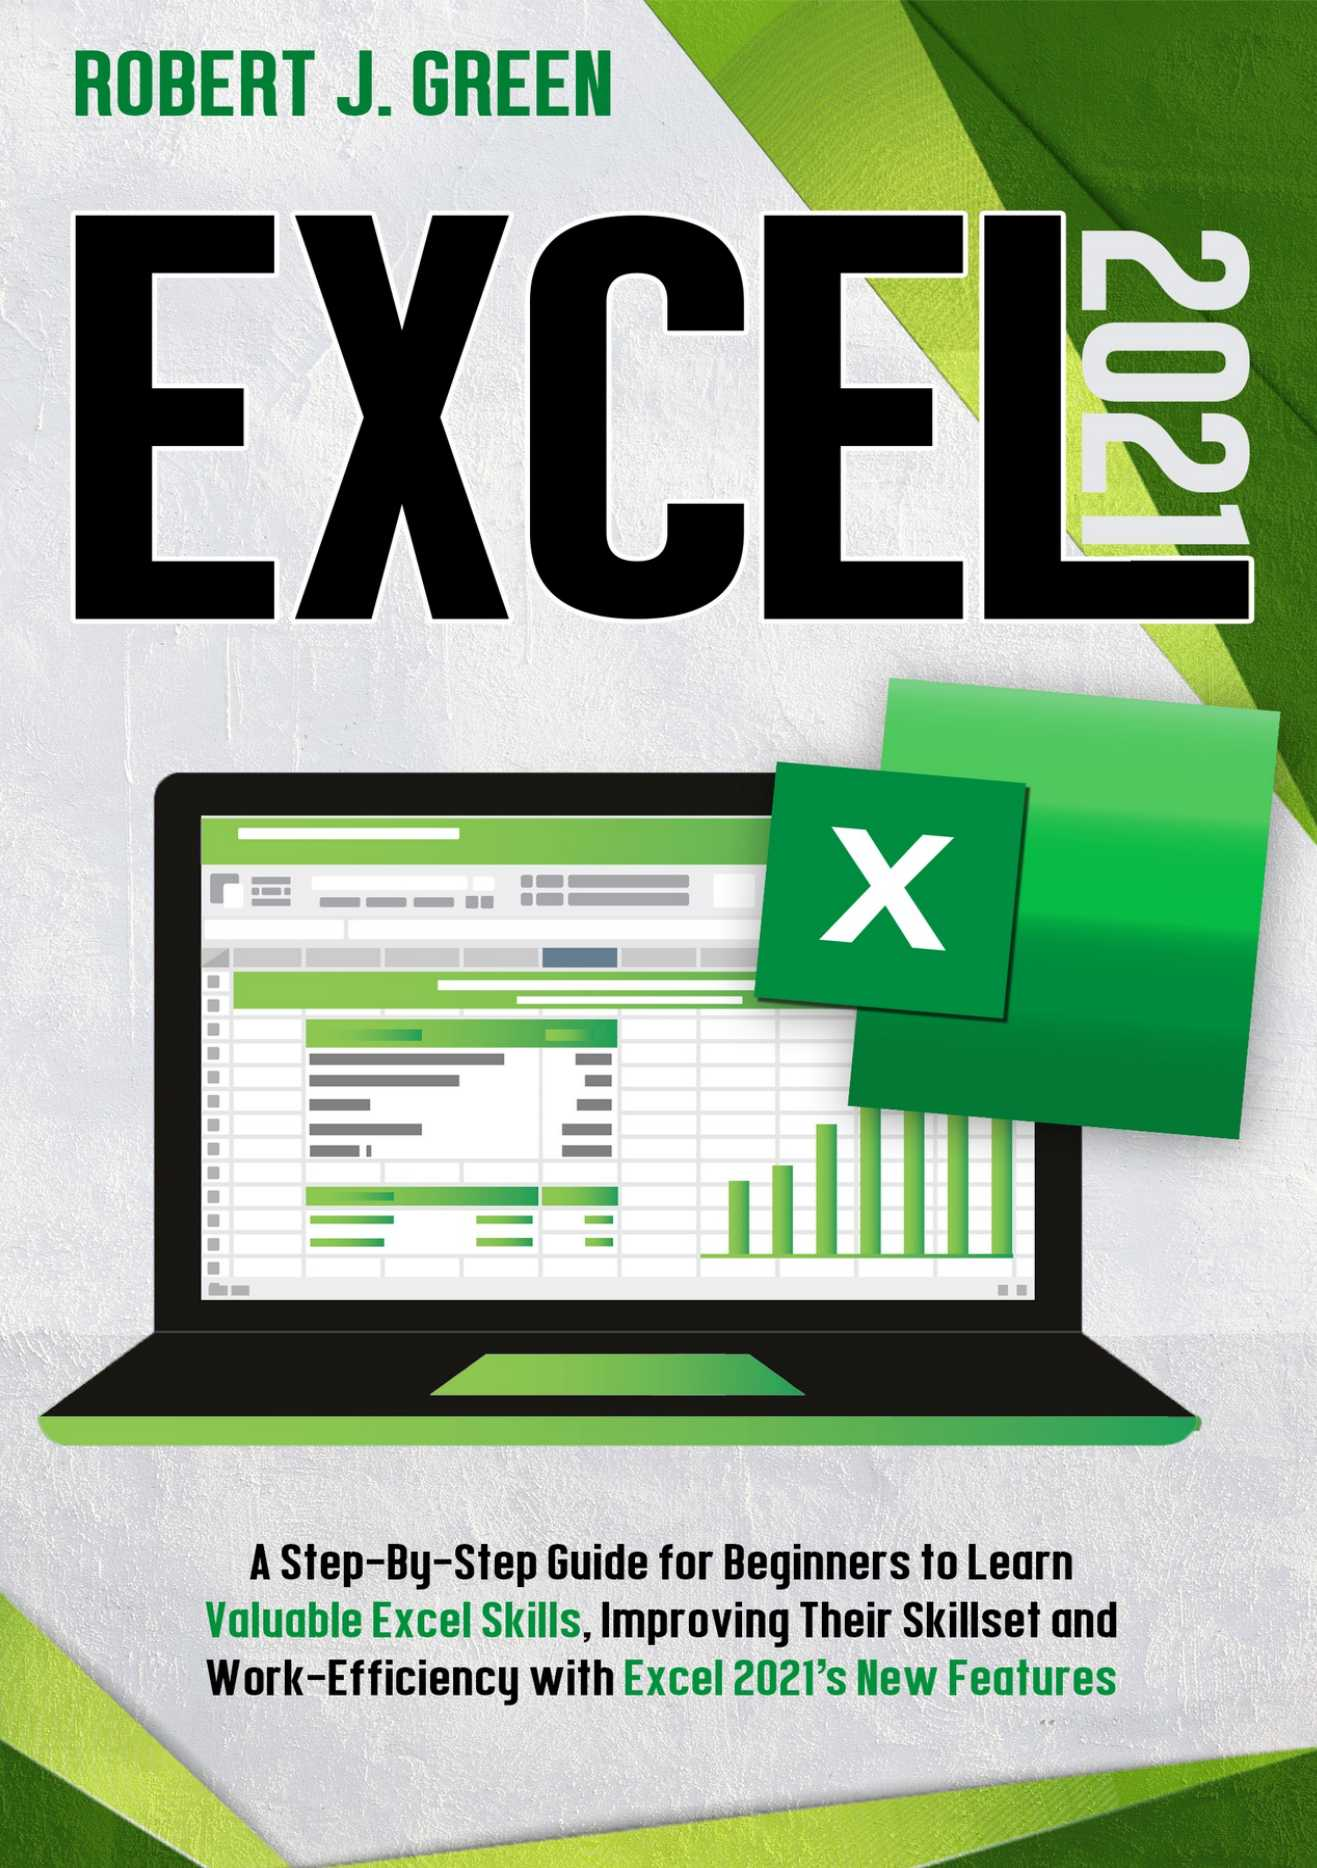 Excel 2021: A Step-By-Step Guide for Beginners to Learn Valuable Excel Skills, Improving Their Skillset and Work-Efficiency with Excel 2021's New Features